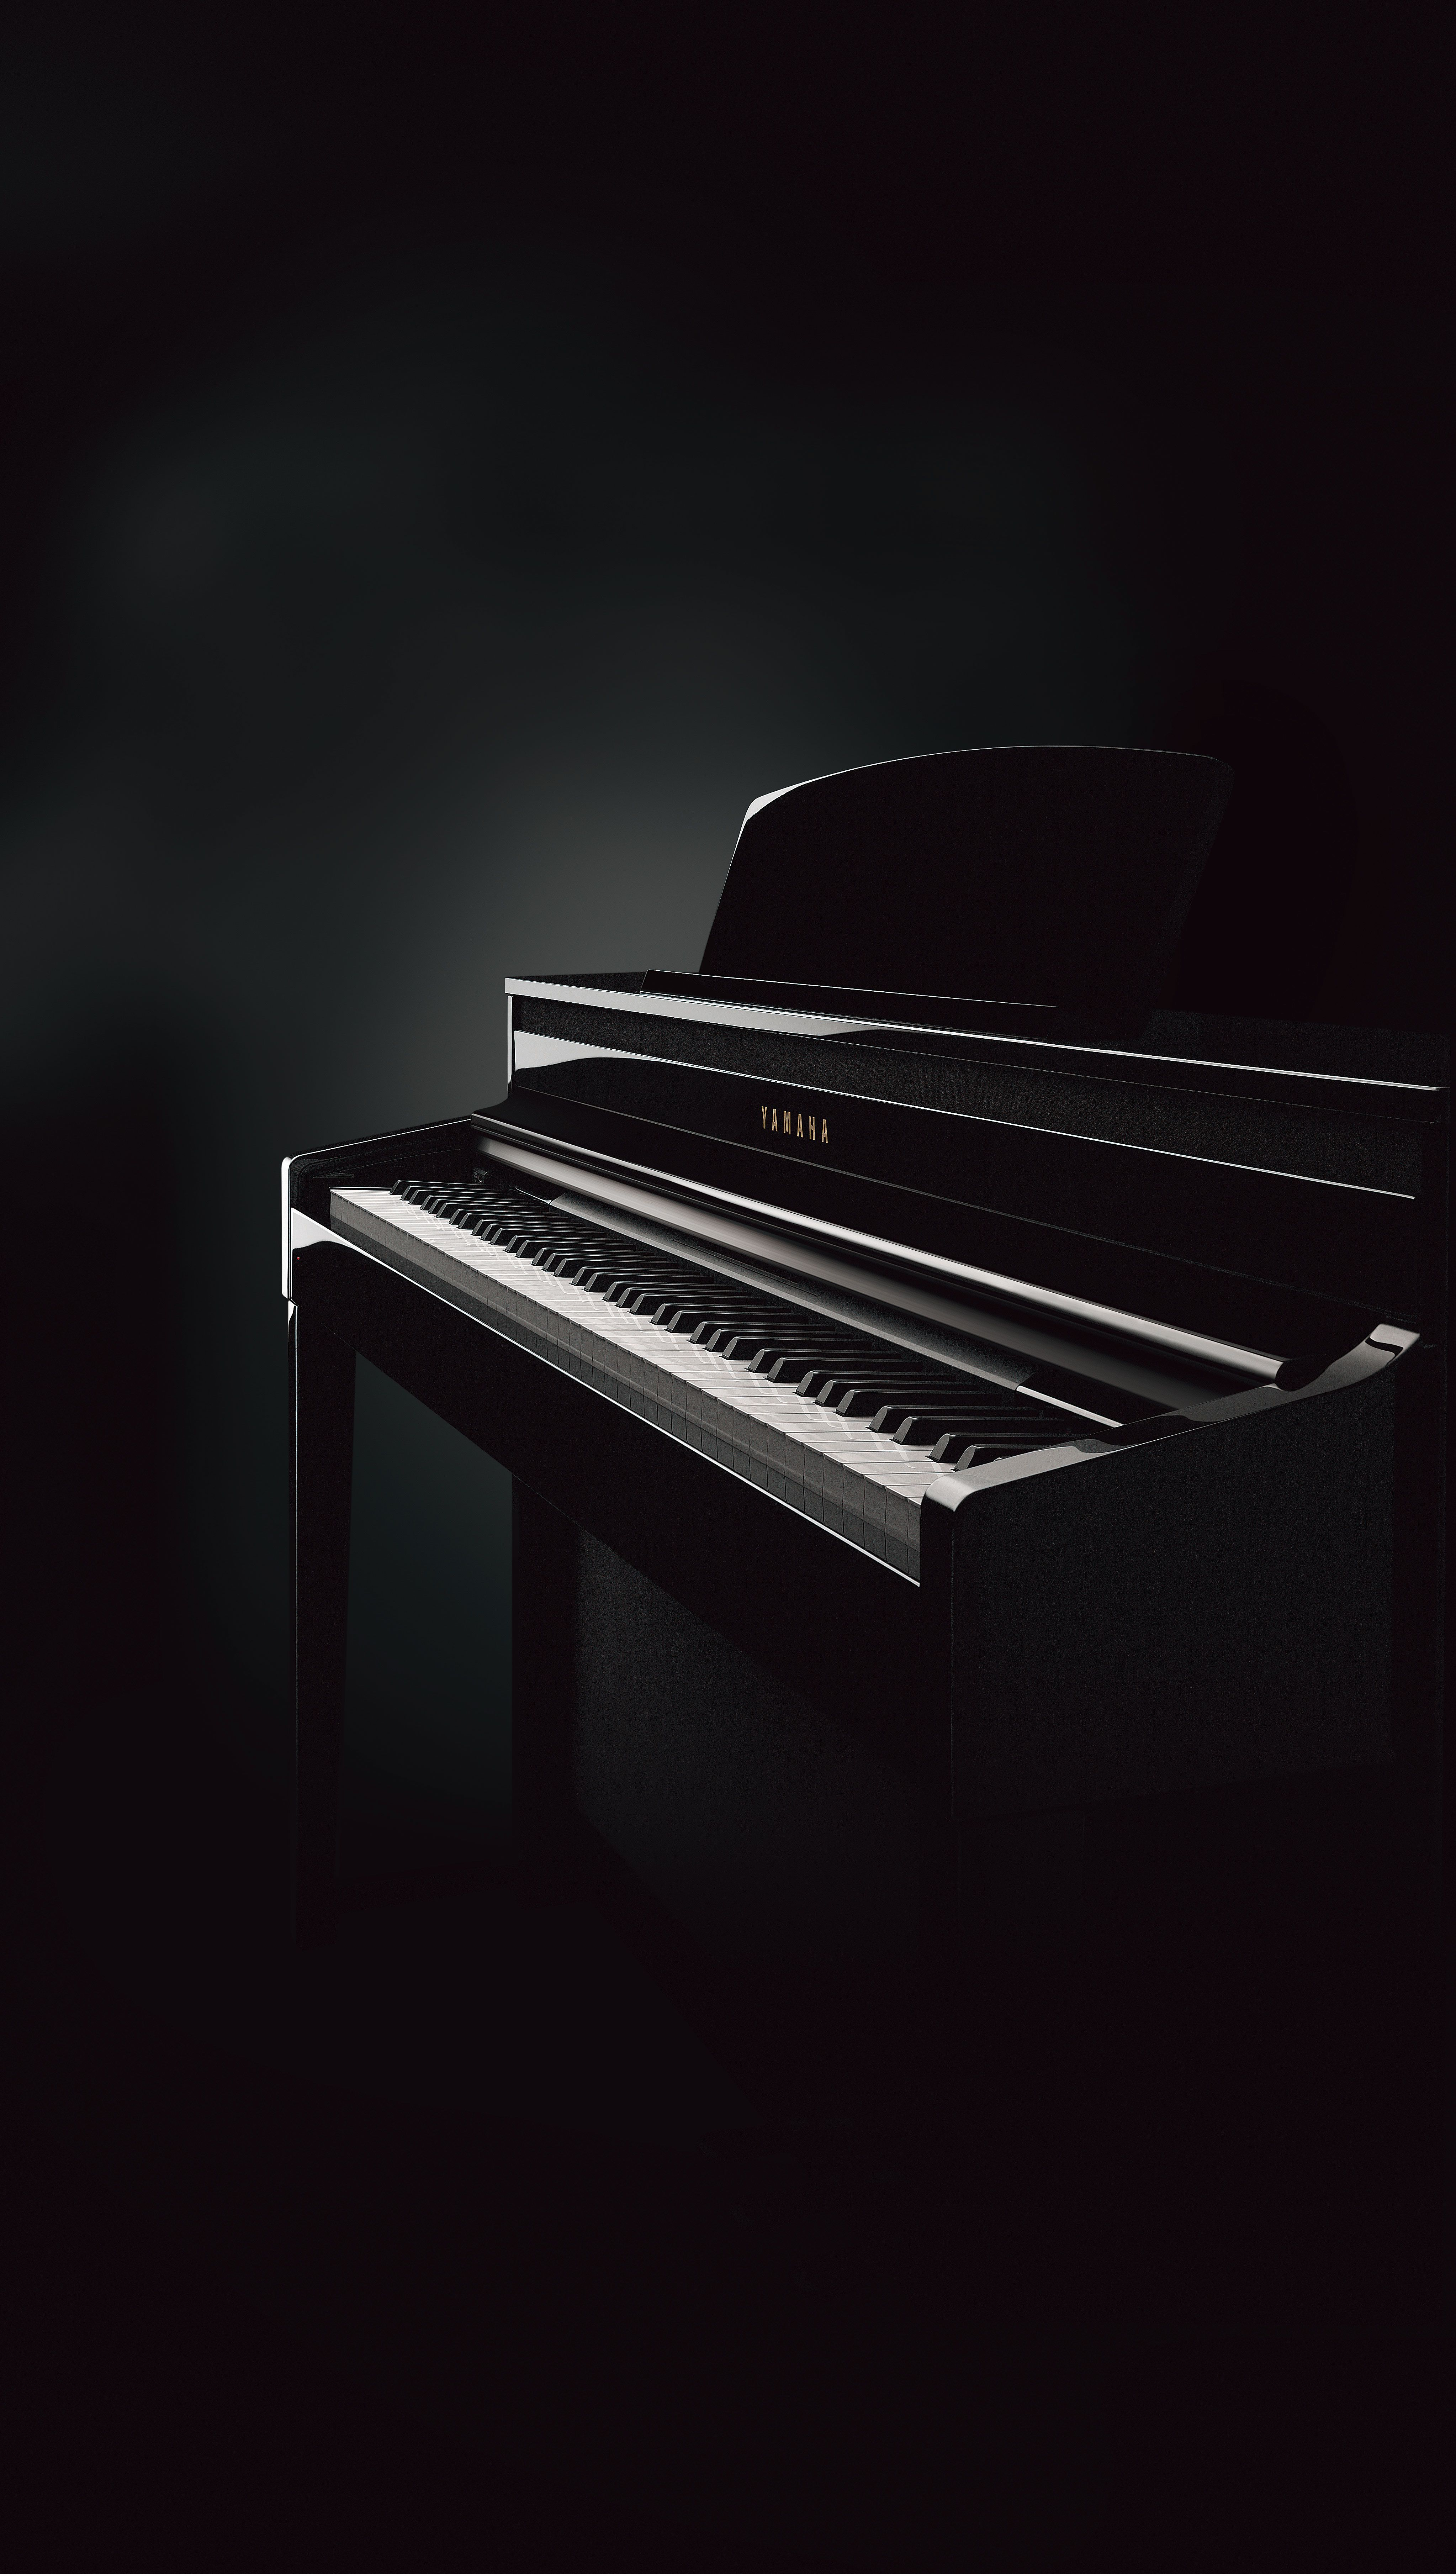 Clavinova Clp 480 Digital Piano In Polished Ebony Finish Panel Reveal Key Cover Hides The Operating Panel For A More Natural Piano Art Piano Photography Piano